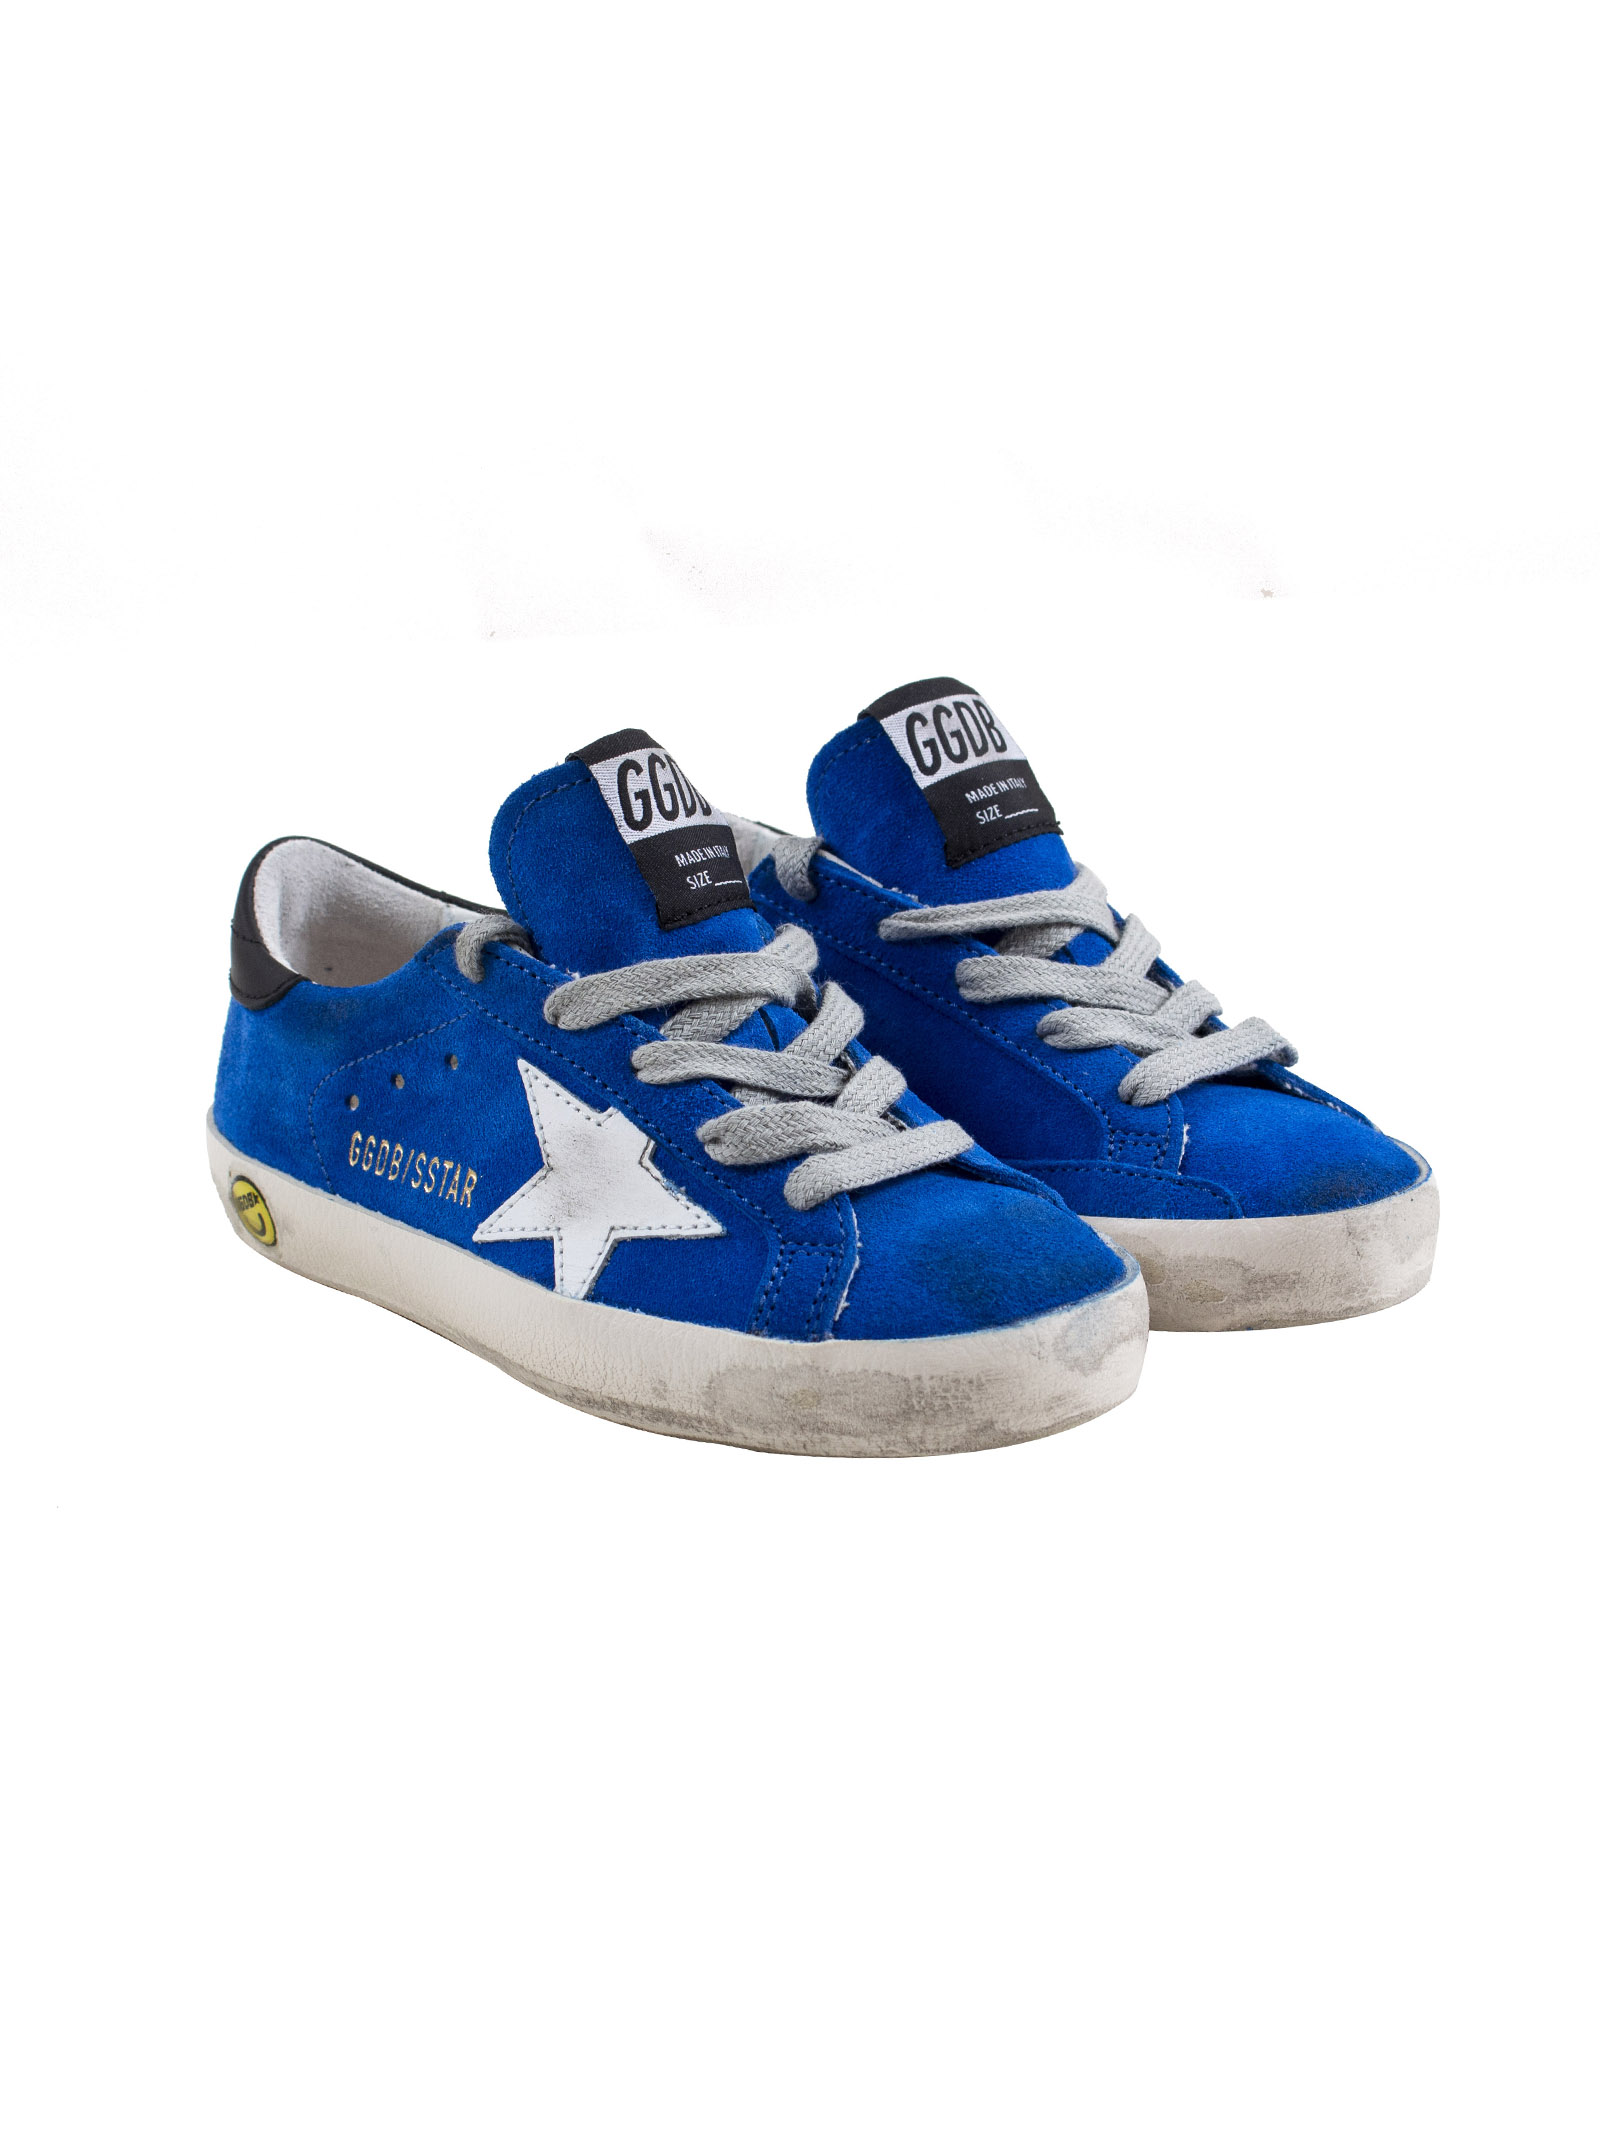 a80f60f6eebd HOME   CATEGORIES BAMBINO   SHOES   SHOES   SNEAKERS SUPERSTAR